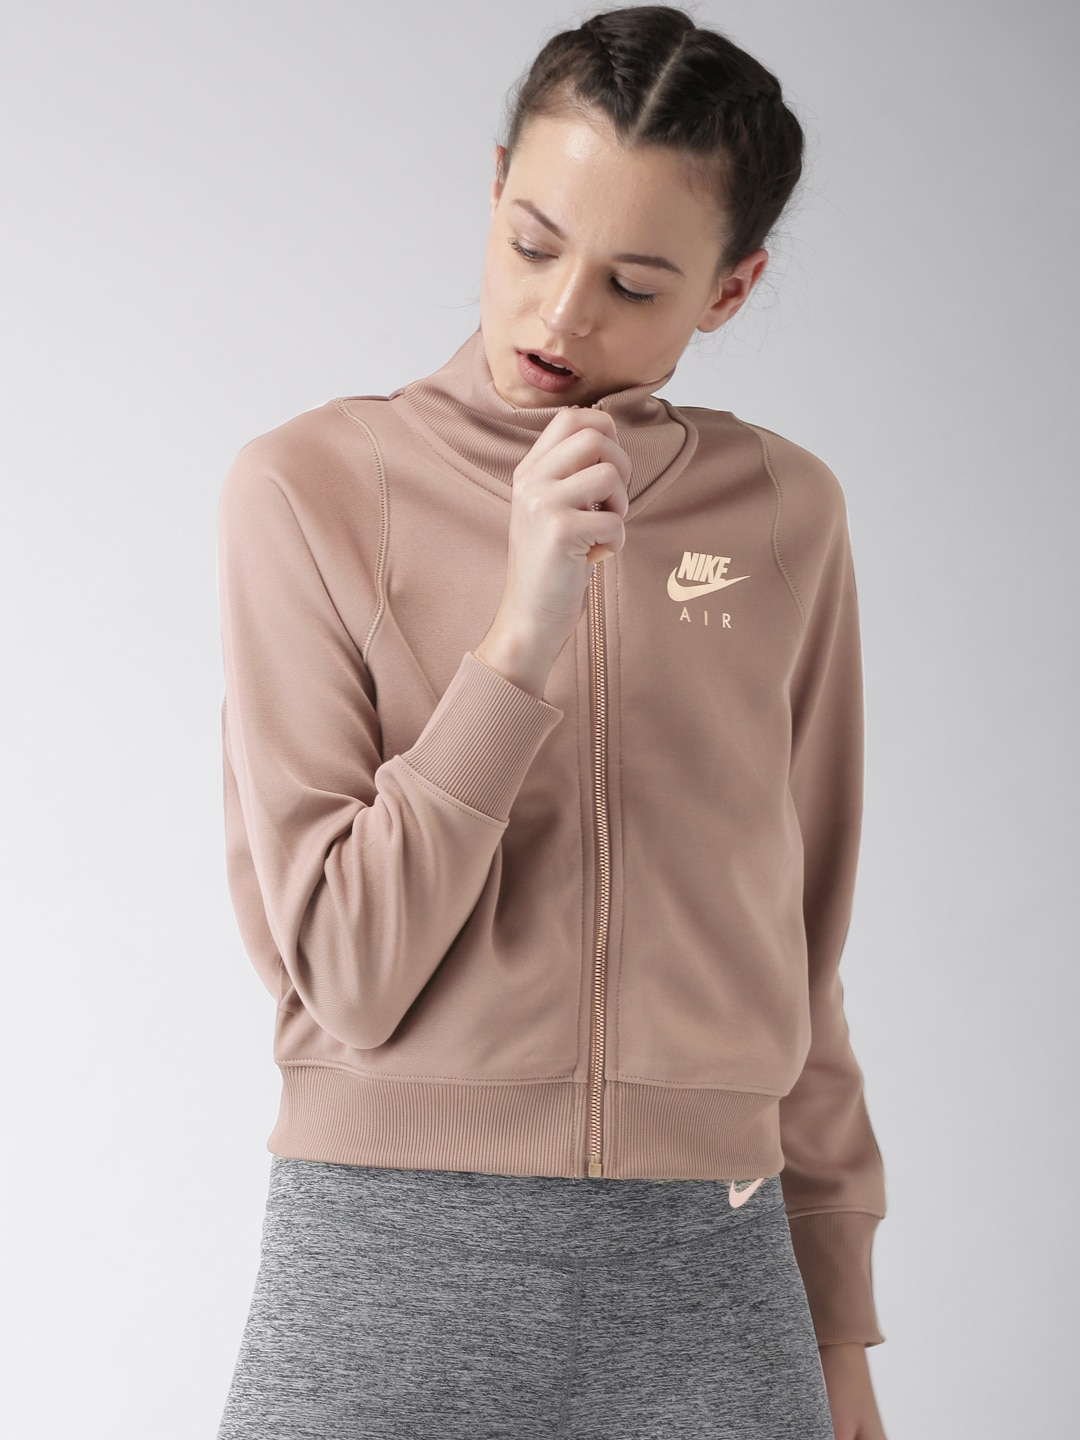 0f121a67c04f Nike Womens Jackets - Buy Nike Womens Jackets online in India